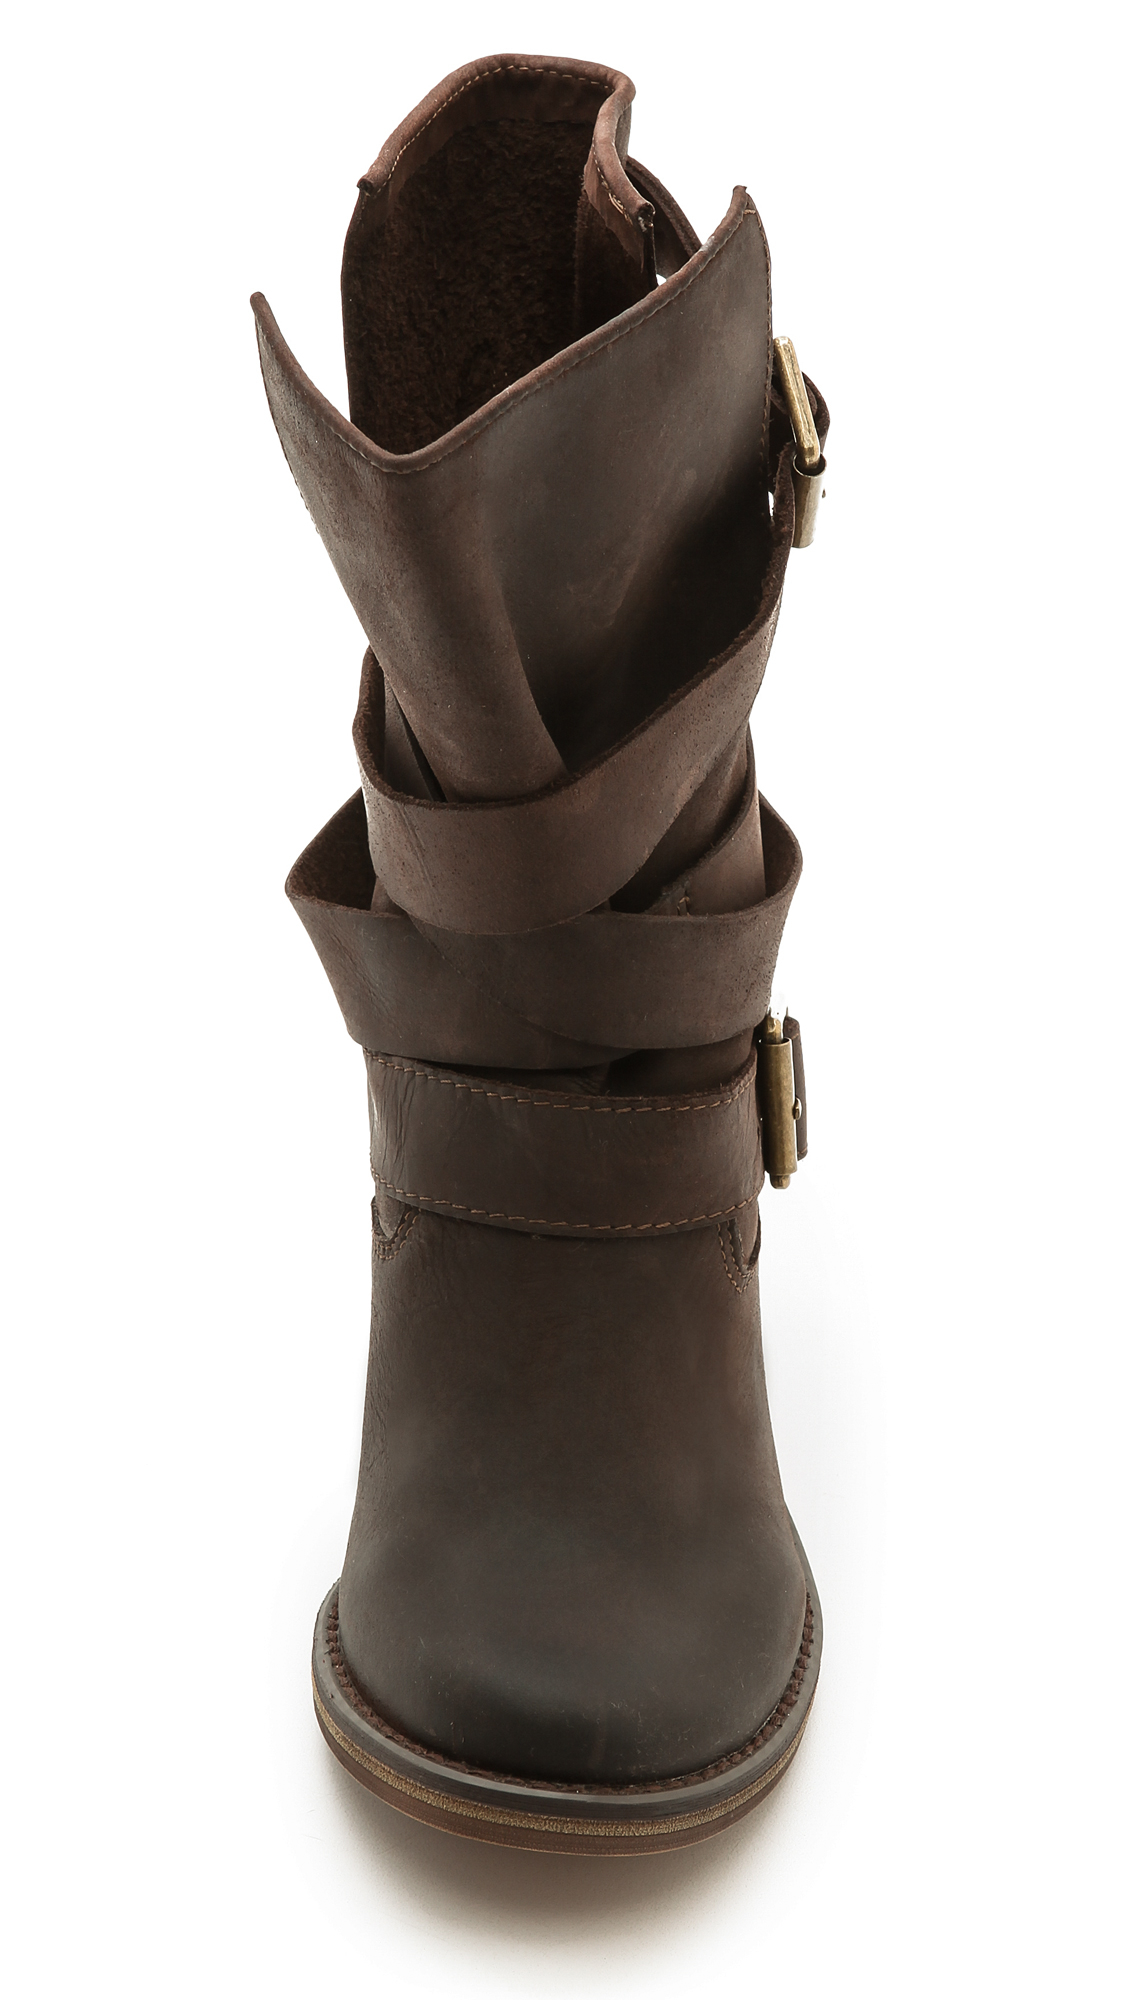 Jeffrey campbell France Wrap Strap Boots in Brown   Lyst